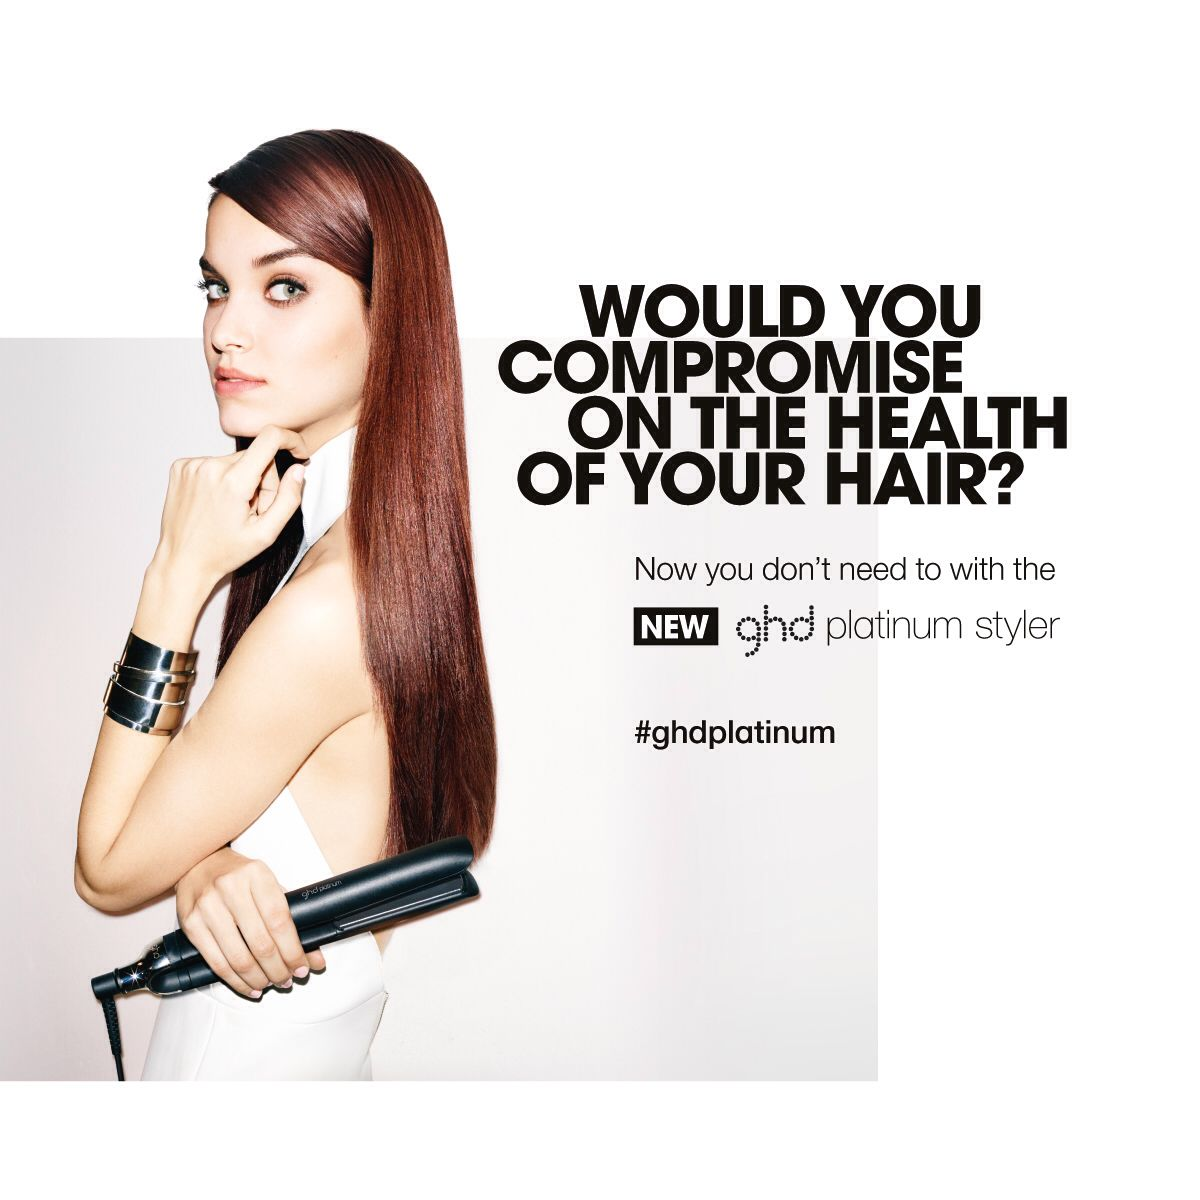 We Are In Love With The New Platinum No Excuses For Damaged Hair Catokan Styler Rotating Iron Curler Ghd Compromise Styling